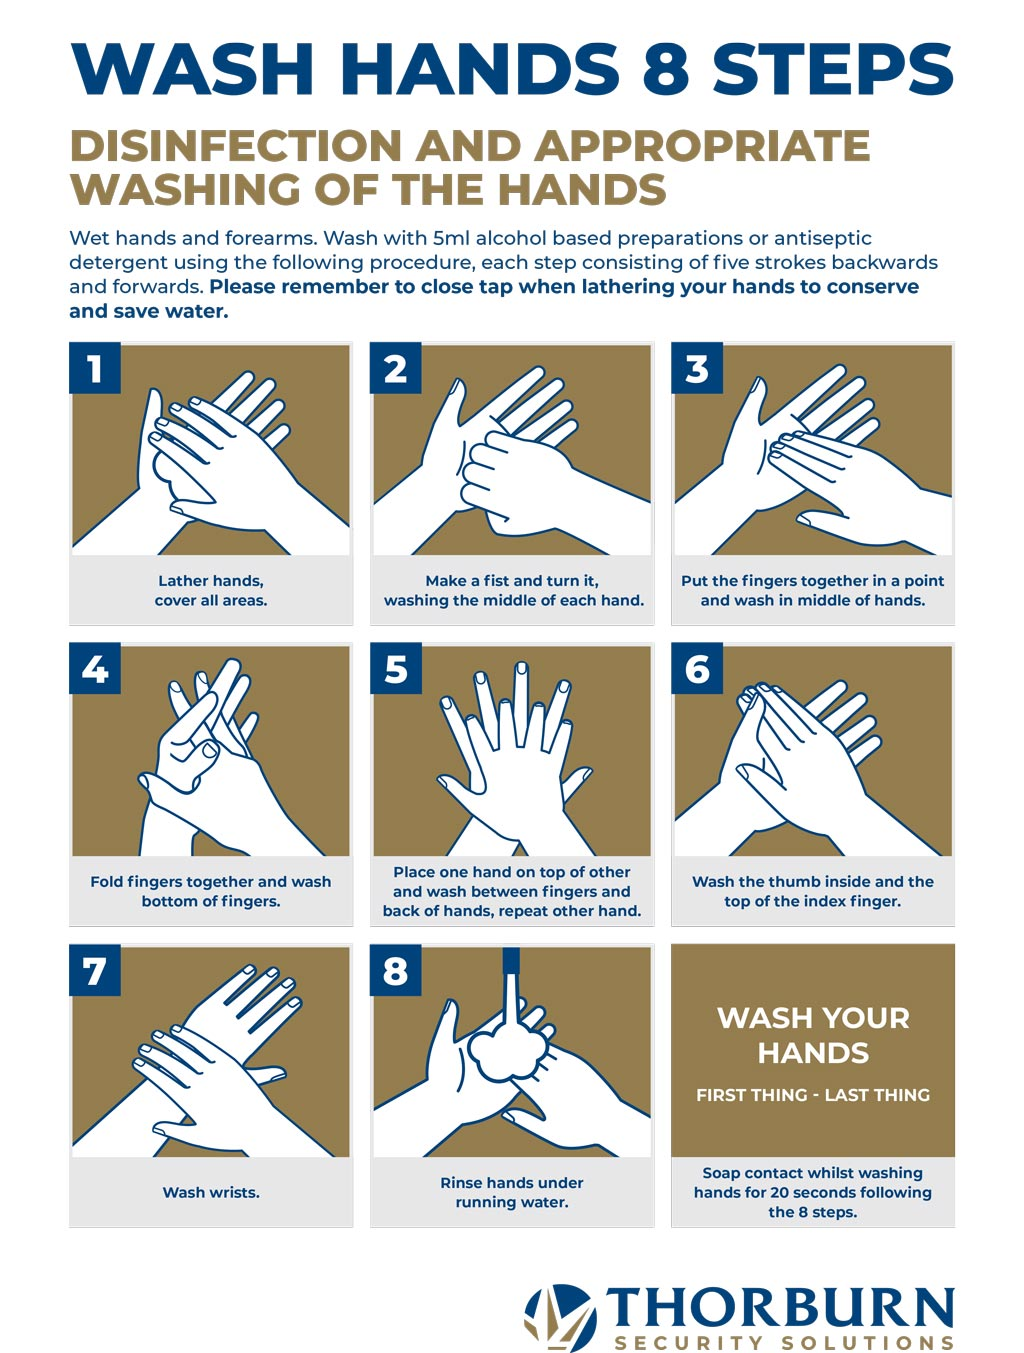 Thorburn Security Services South Africa - Our Values - Wash Hands 8 steps